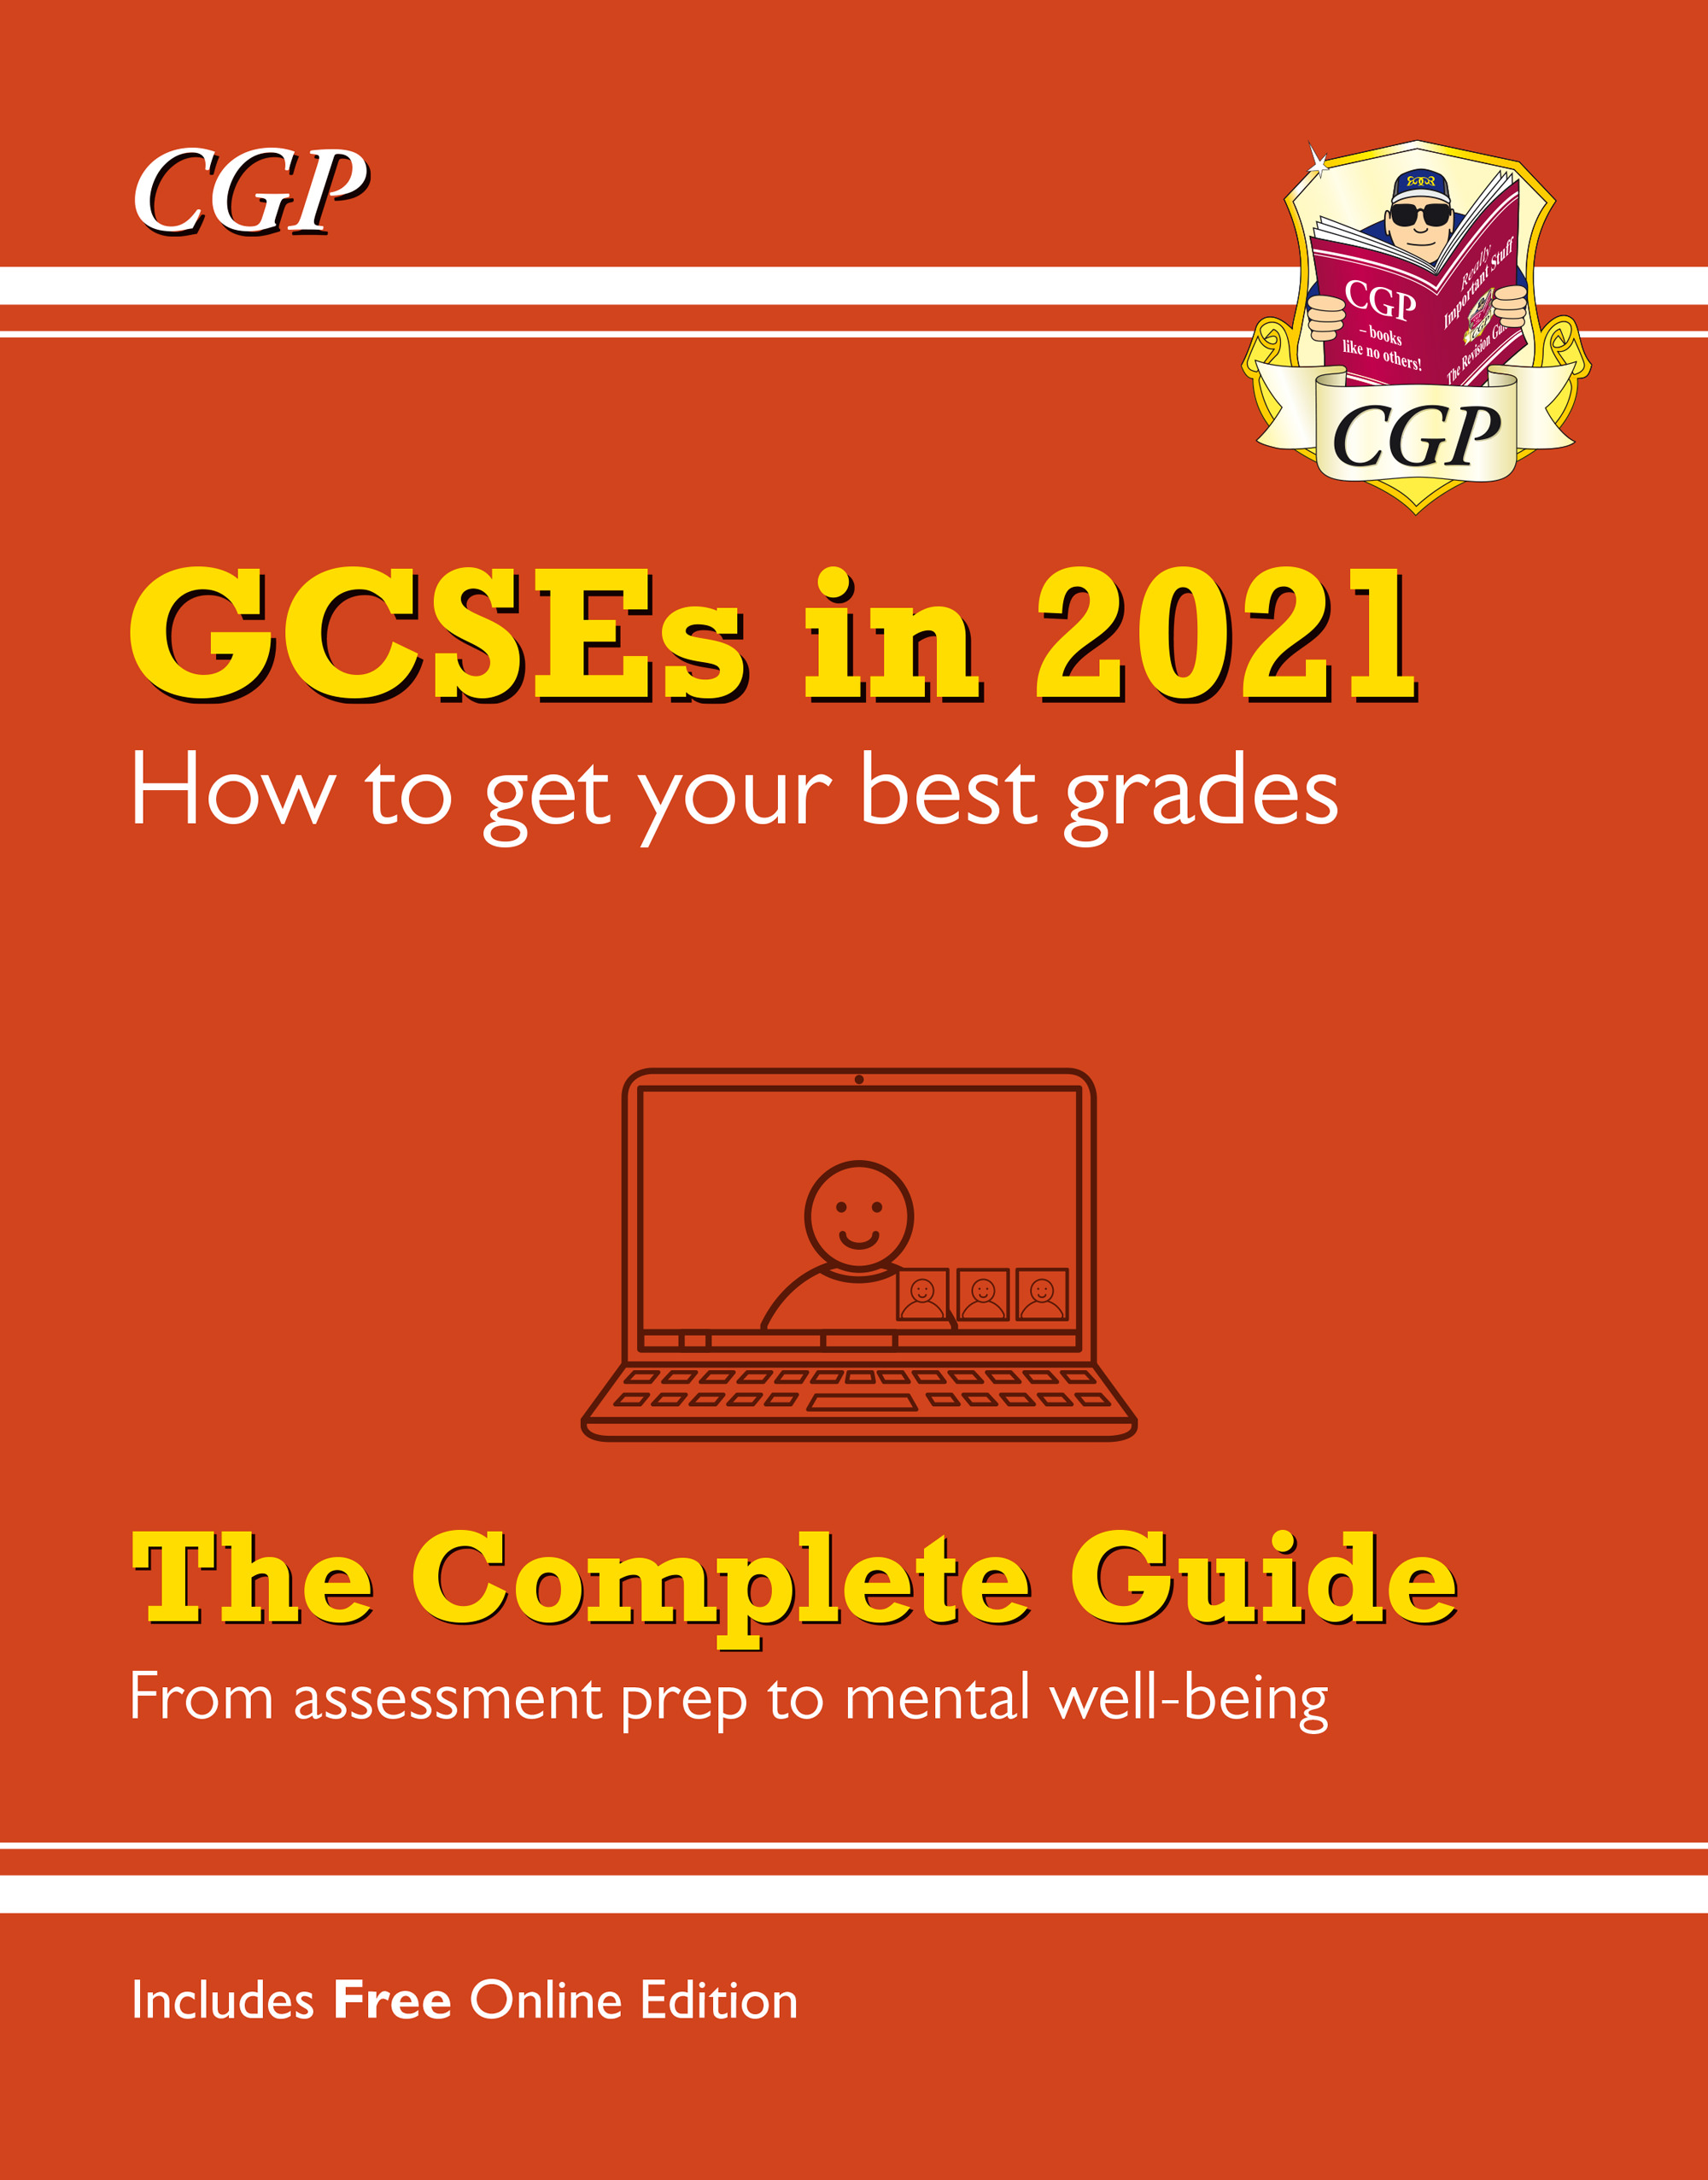 XHBGR41 - GCSEs in 2021: How to get your best grades - The Complete Guide